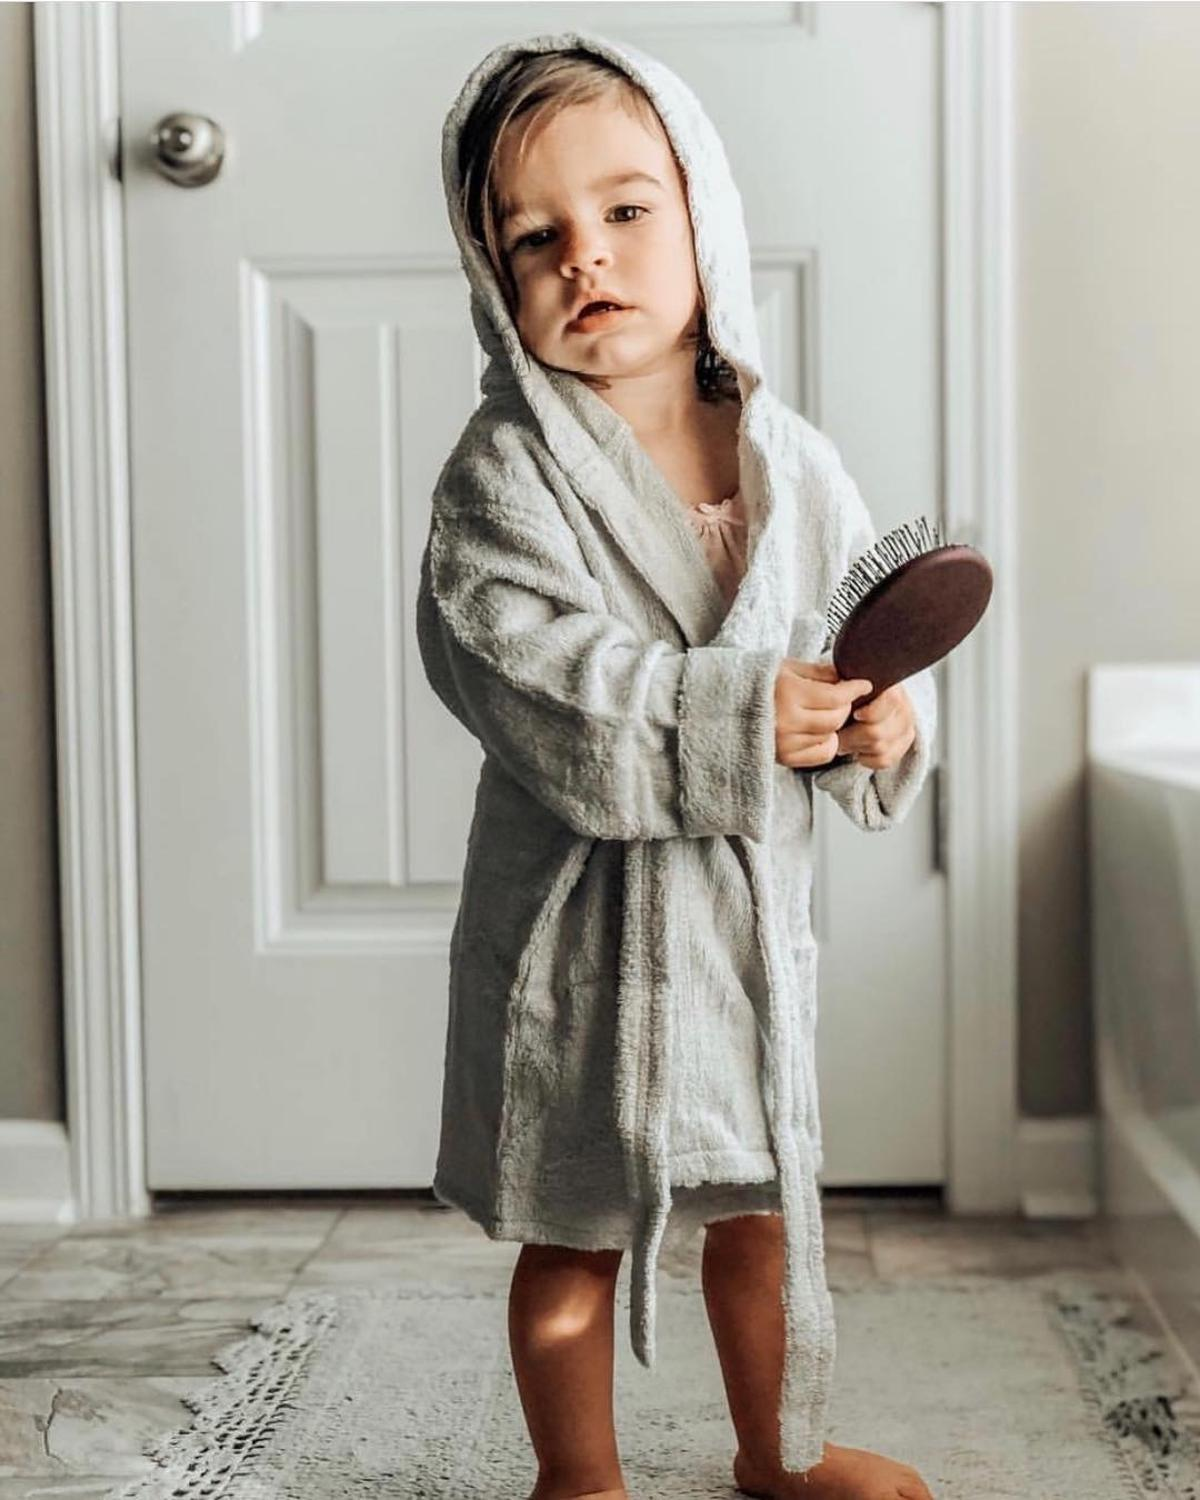 LOOZYKIT Children Sleepwear Hooded Bath Robes Night-robe Pajamas Toddler Baby Boys Girl Long Staple Cotton Bathrobe Kids Clothes